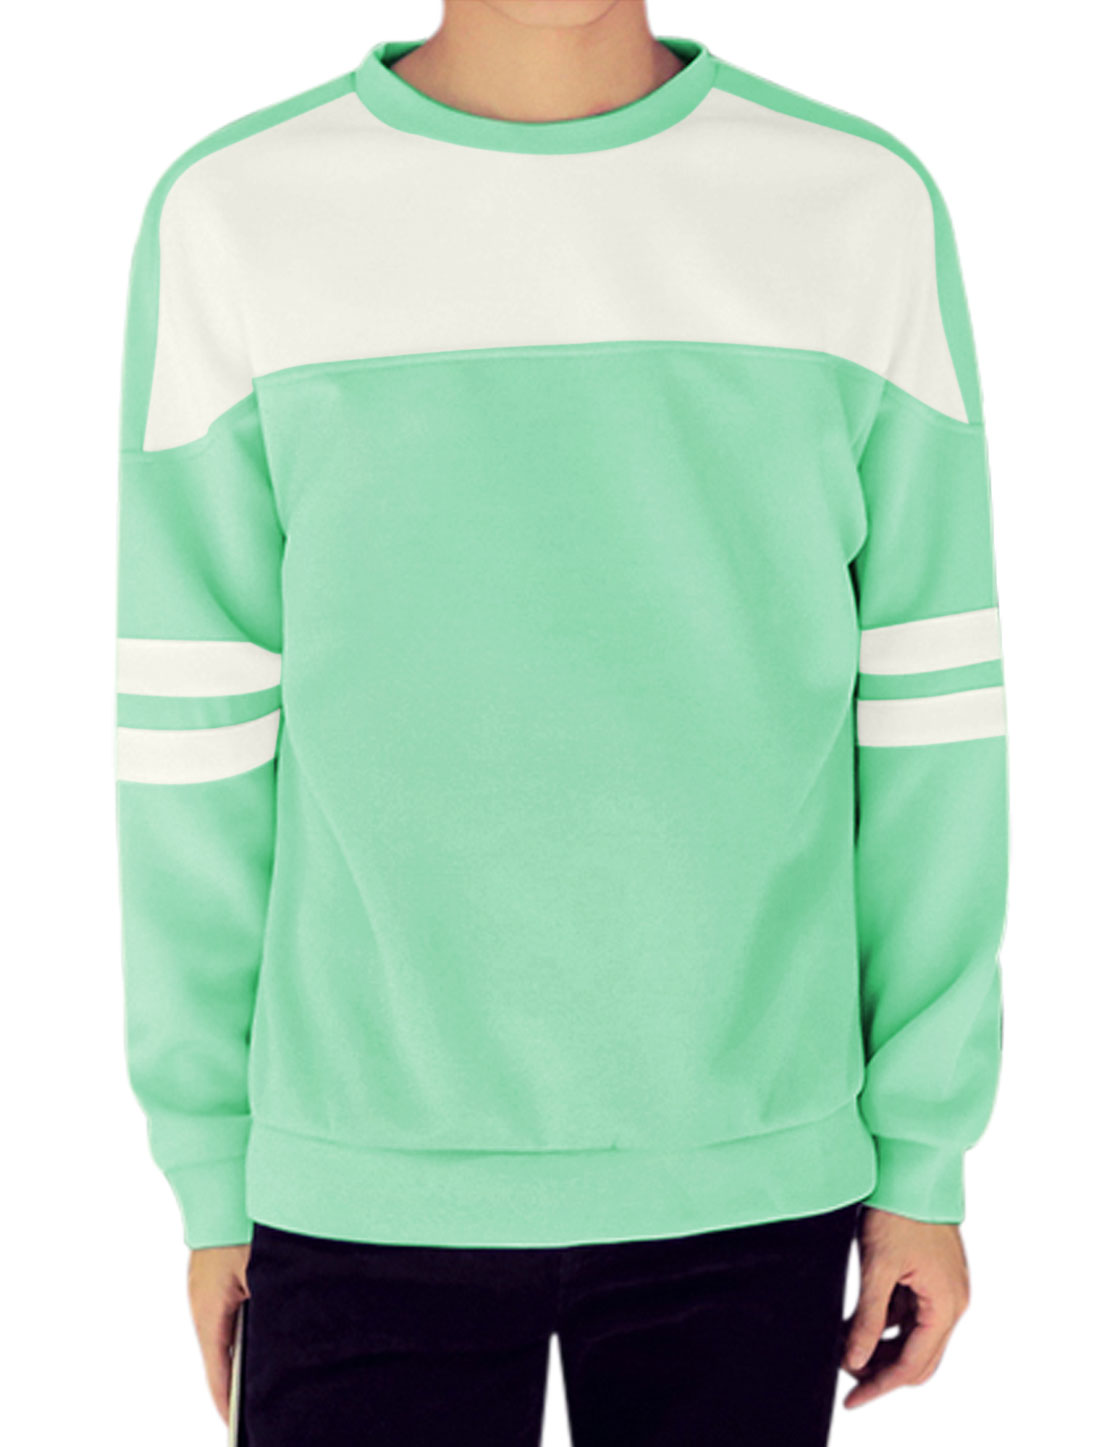 Men Crew Neck Contrast Color Stripes Detail Long Sleeves Tops Green M